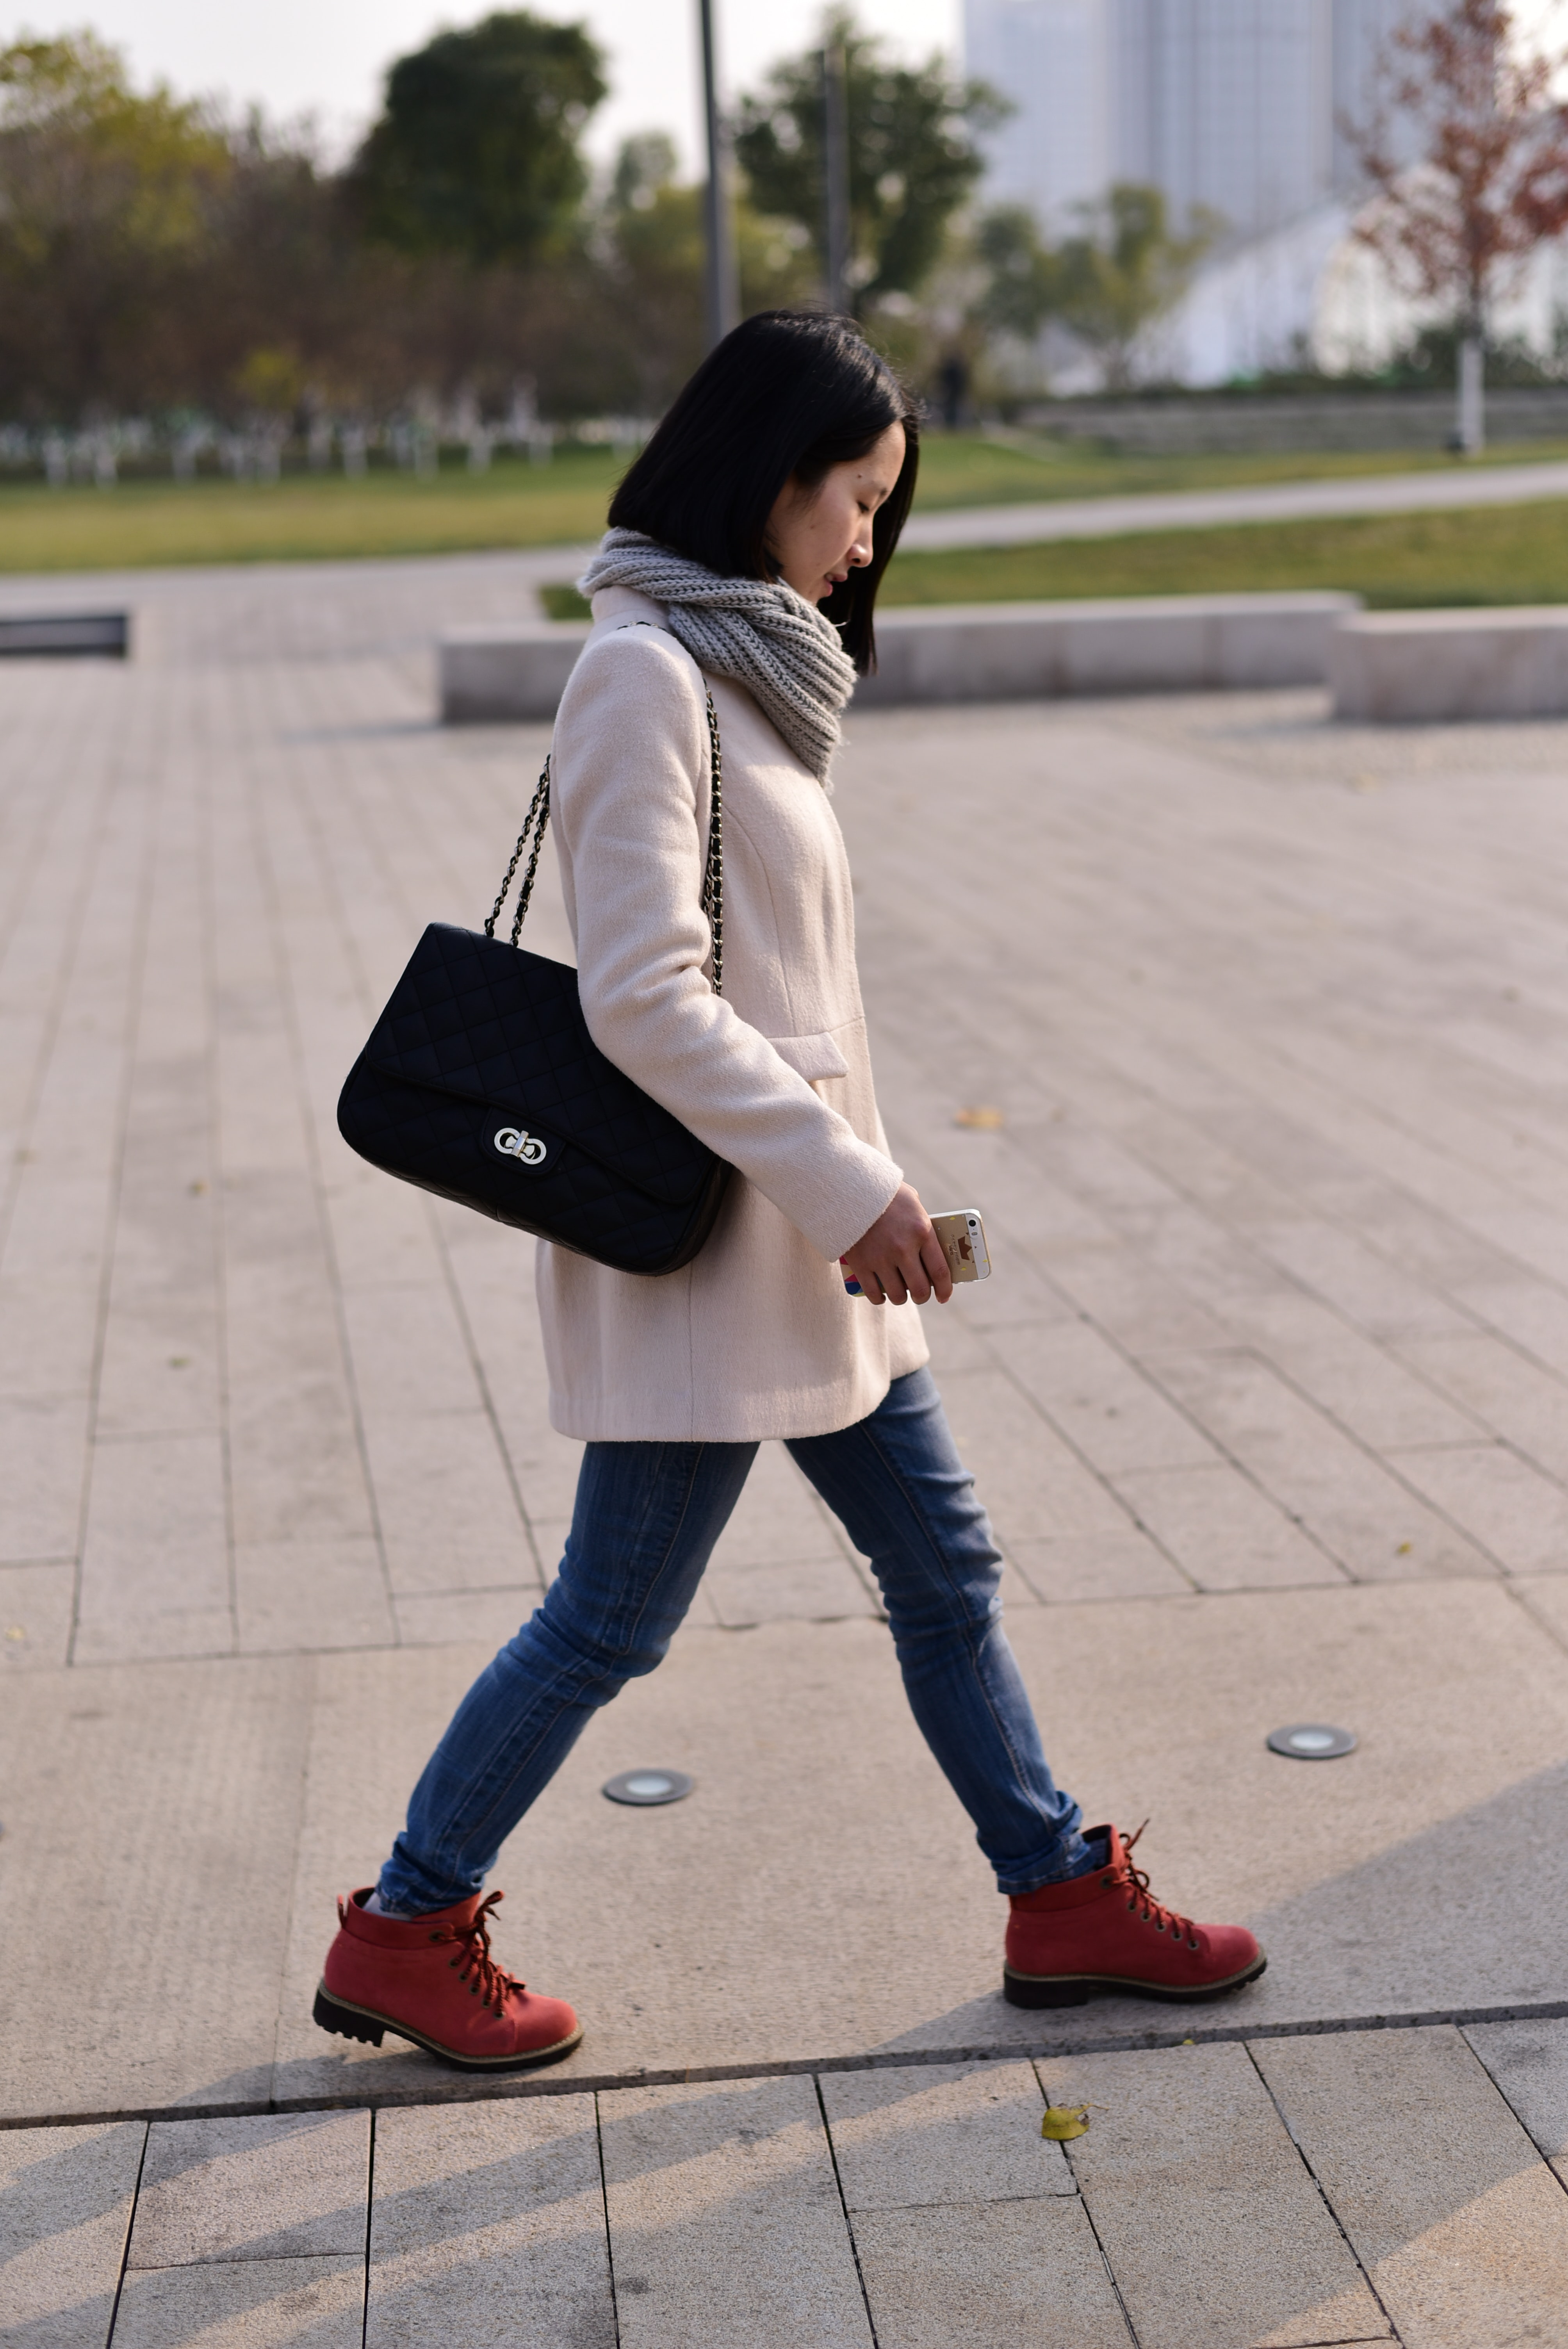 woman walking while holding smartphone